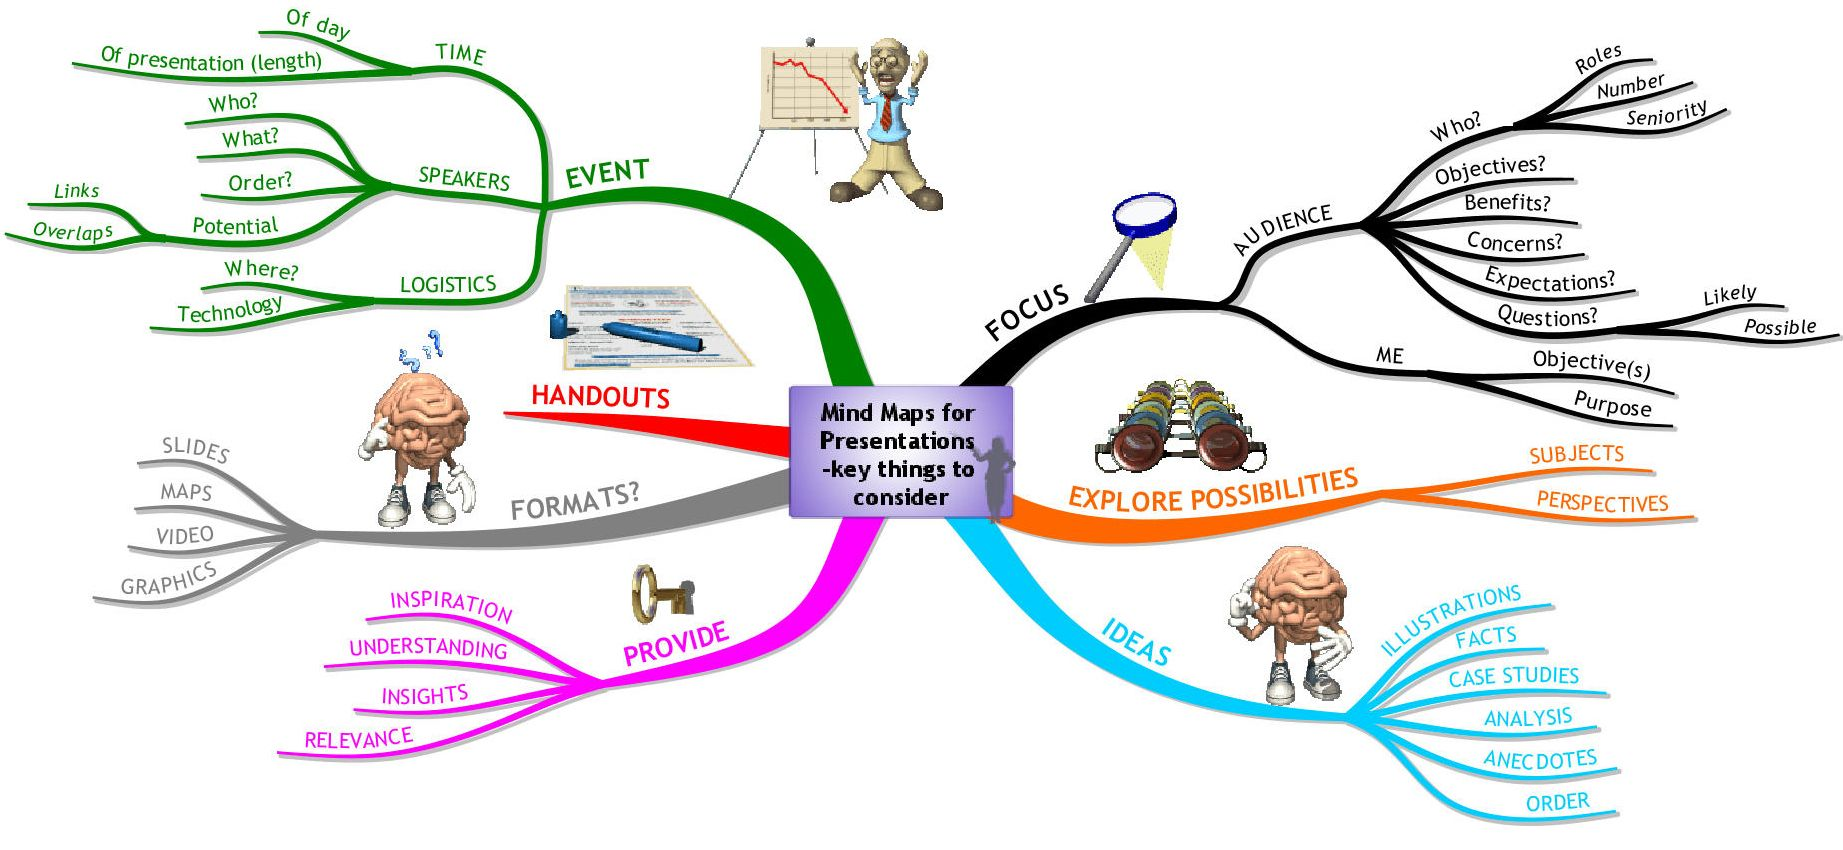 Free Mind Map Templates To Download That Will Help You